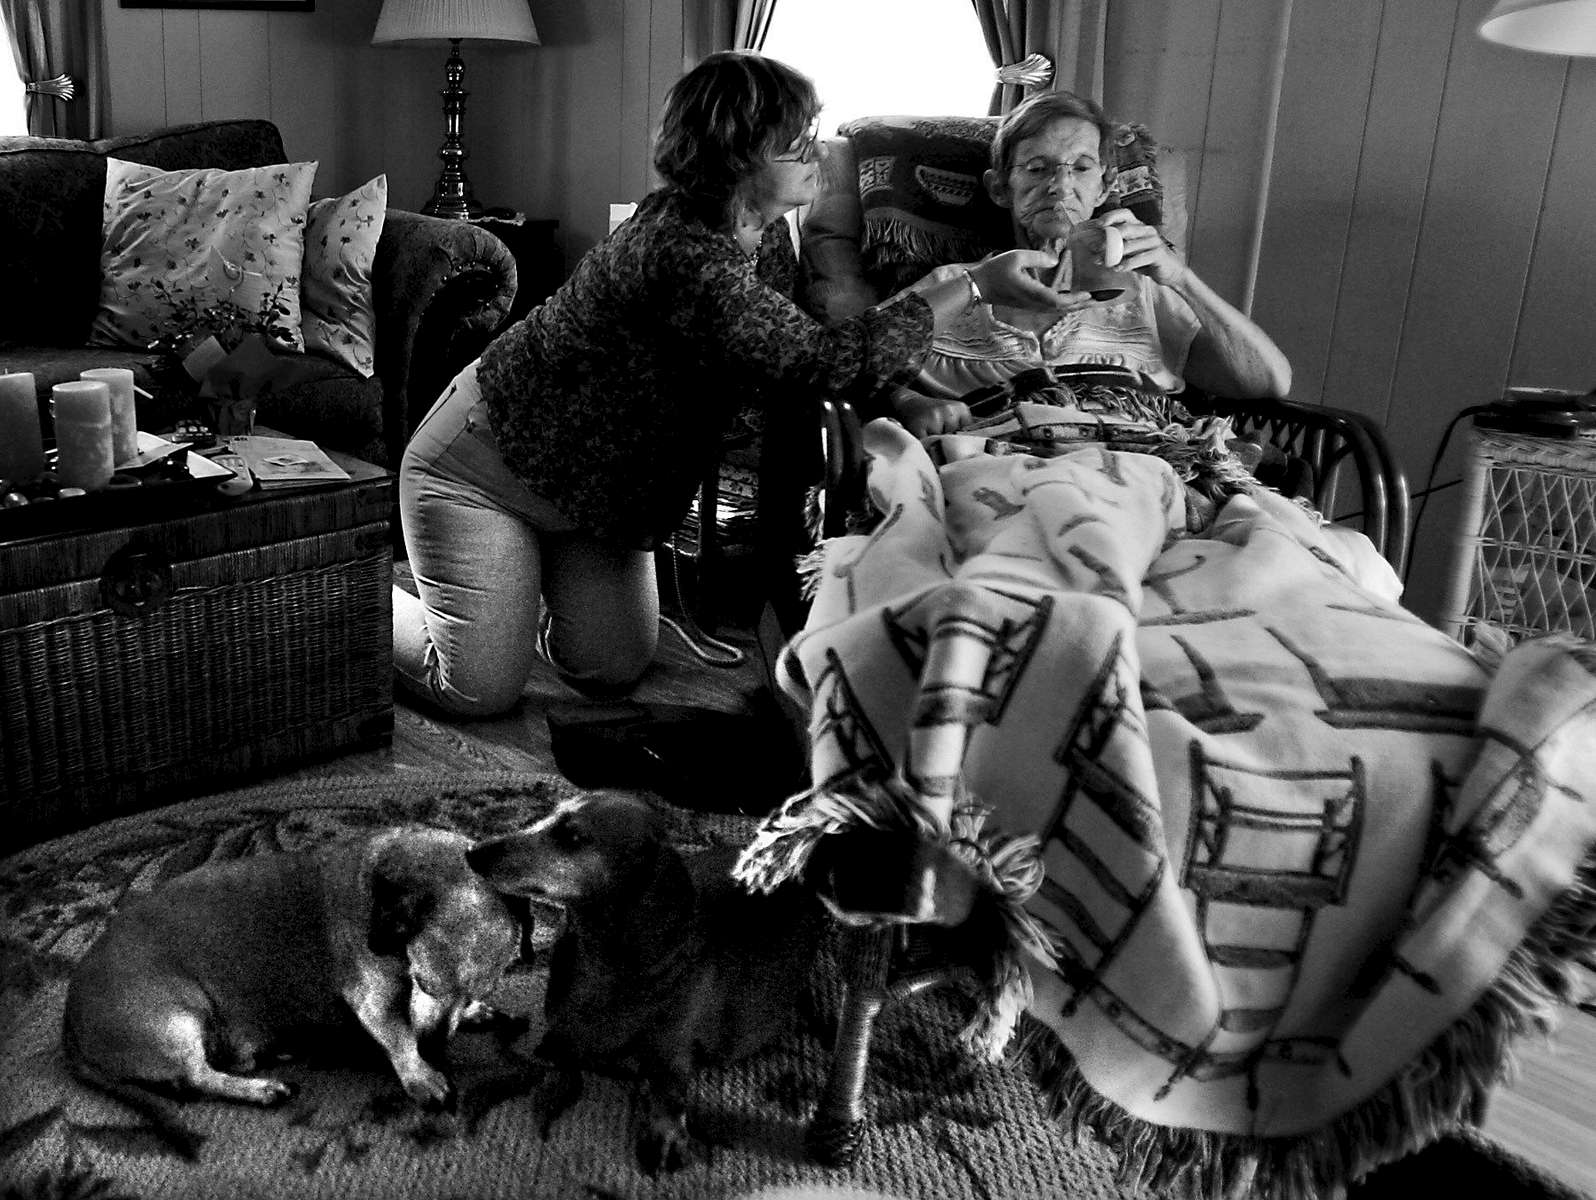 Cassie helps Pat with a drink of coke as Pat's 4-year-old dachshund Gretel grooms the 14-year-old Wrinkles at Pat's home in Conway.